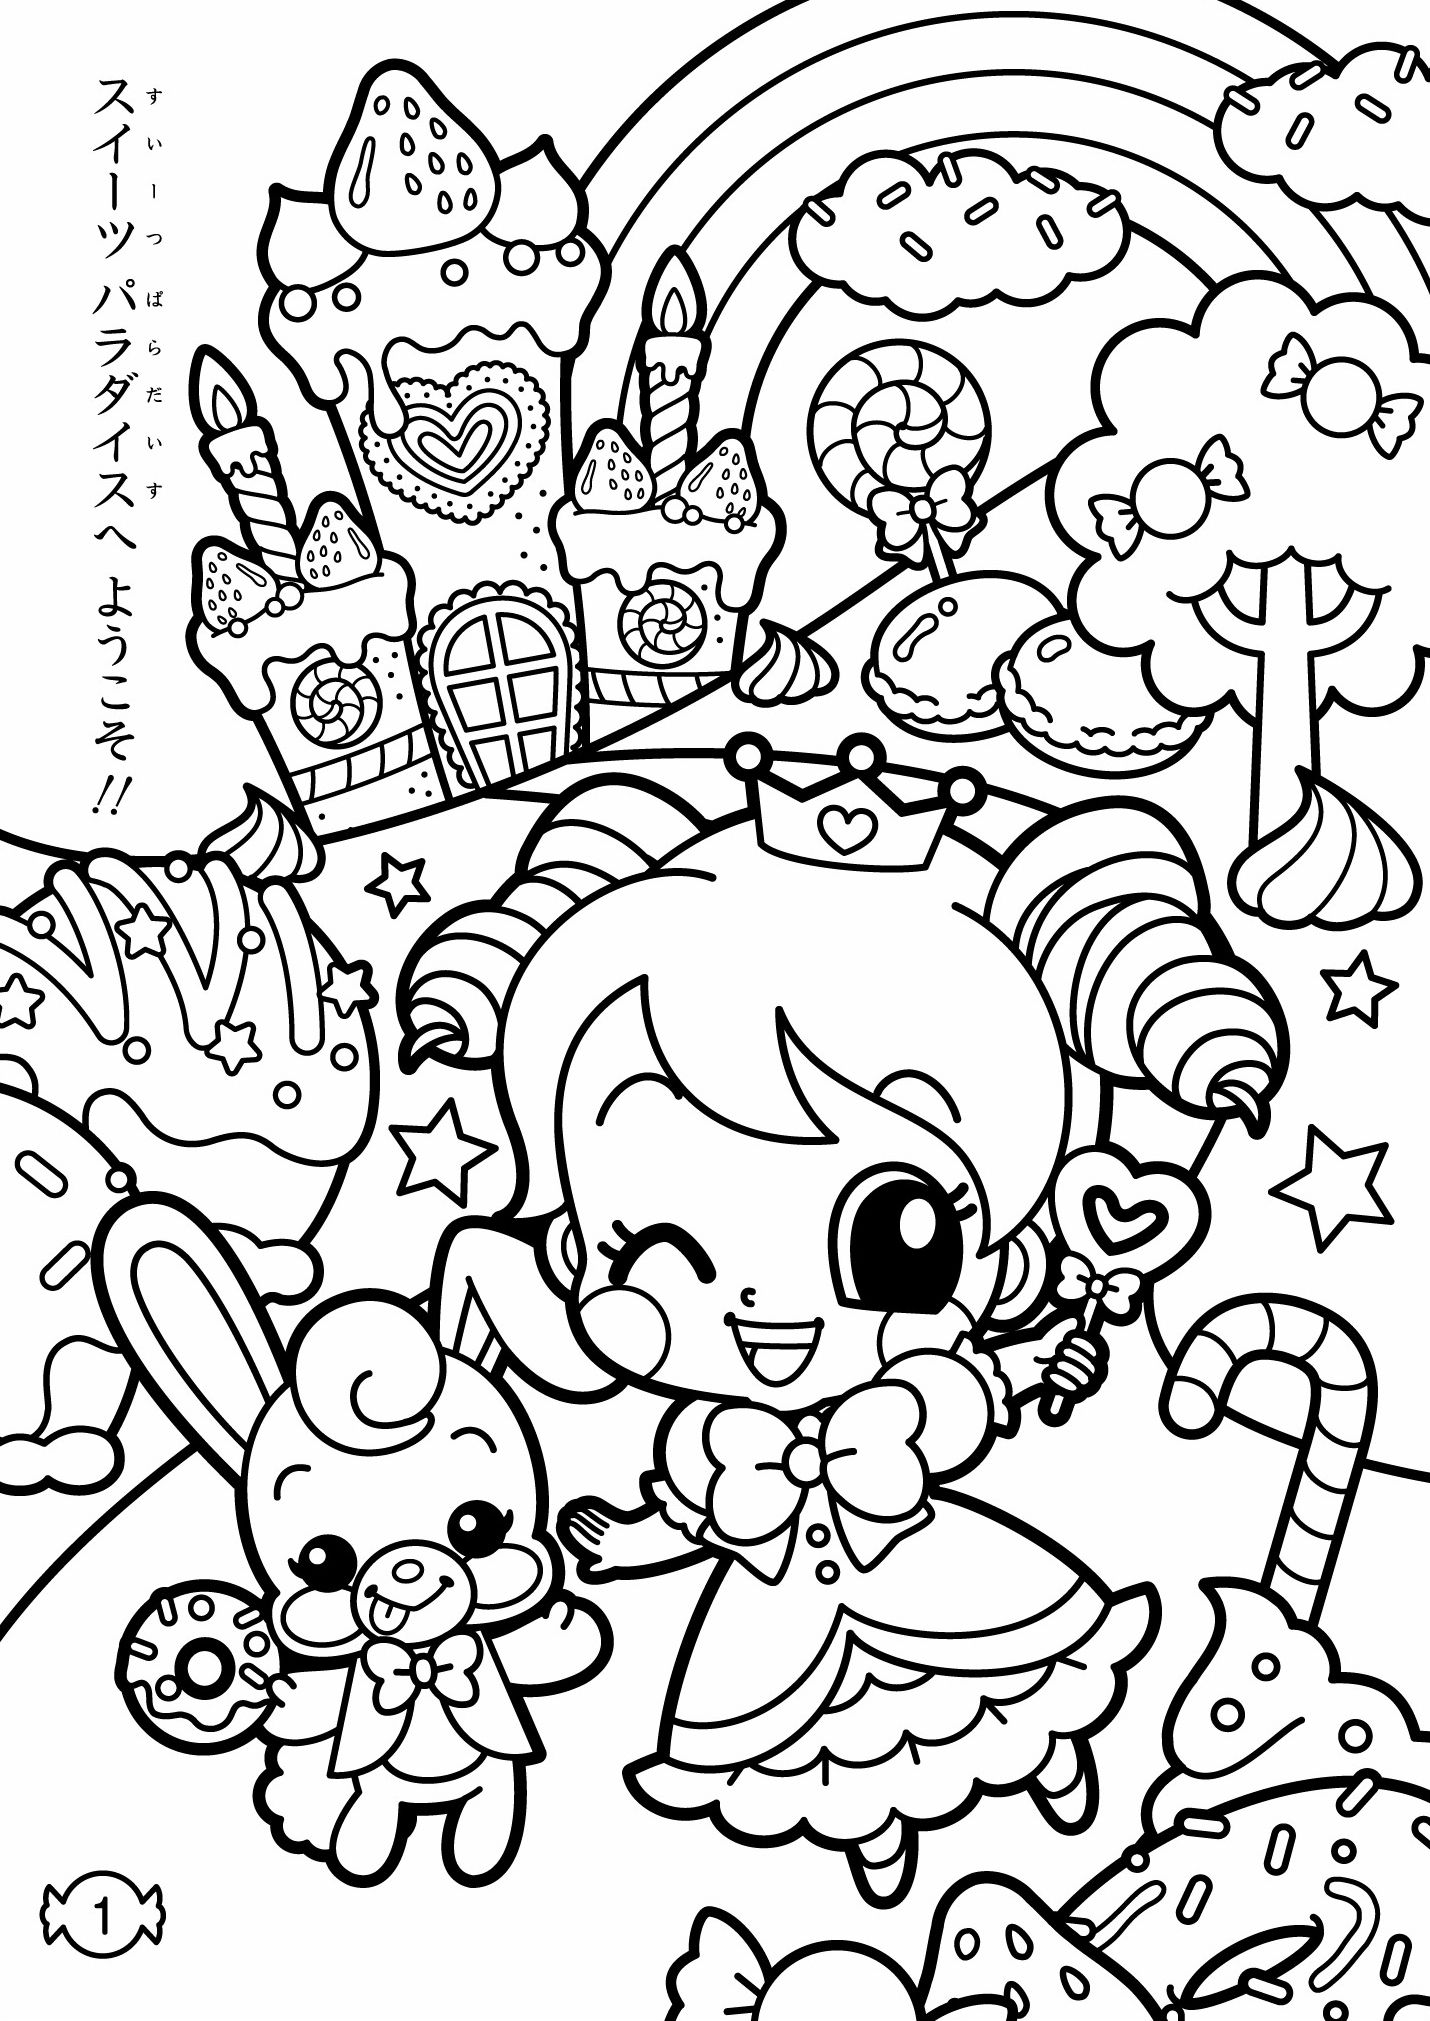 Coloring pages kawaii